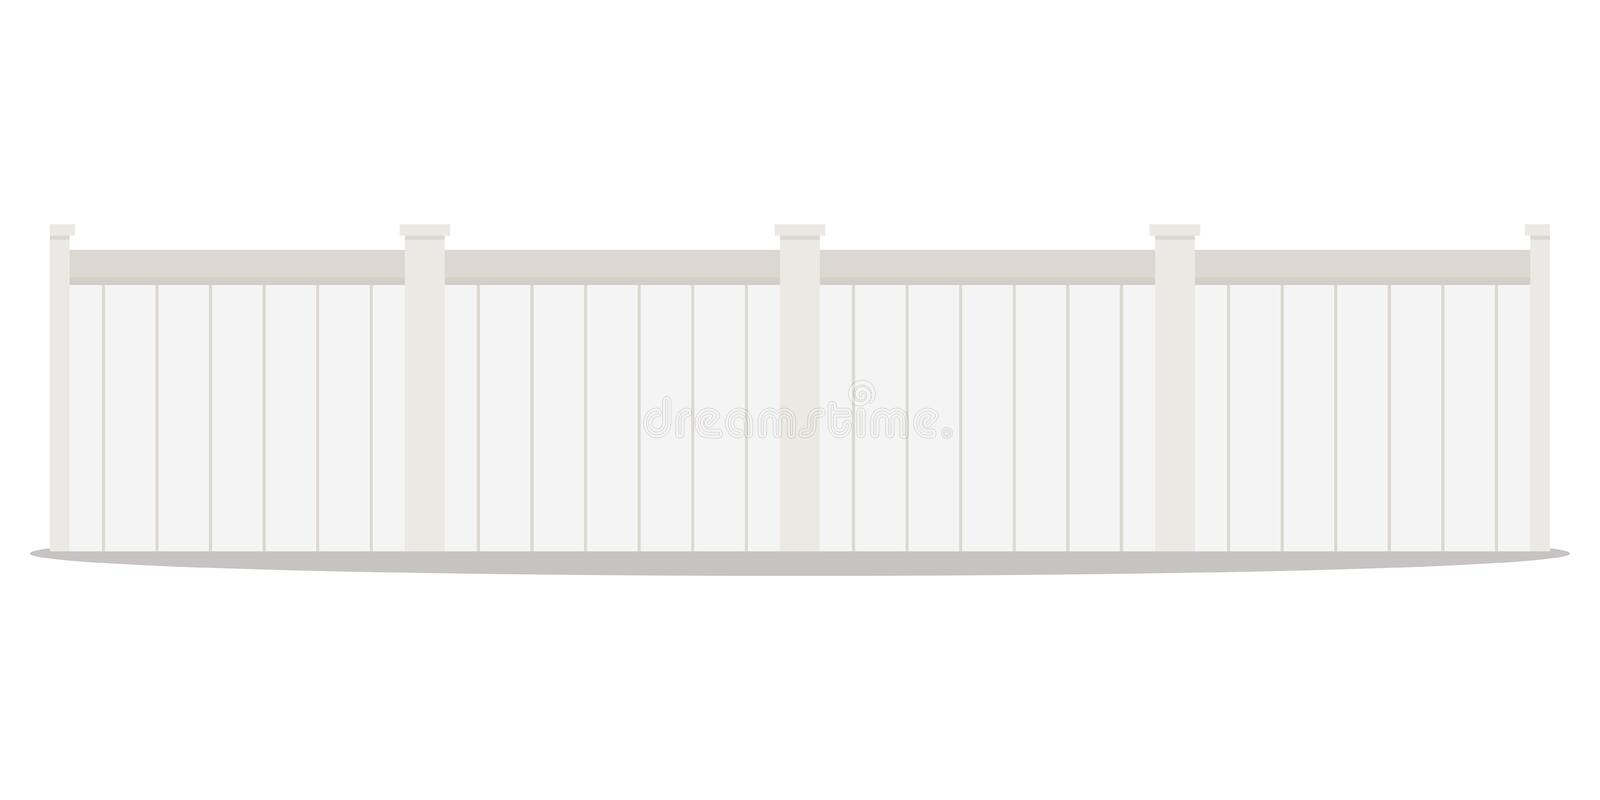 Vector flat design cartoon style illustration of a long row of white wood street picket fences royalty free illustration